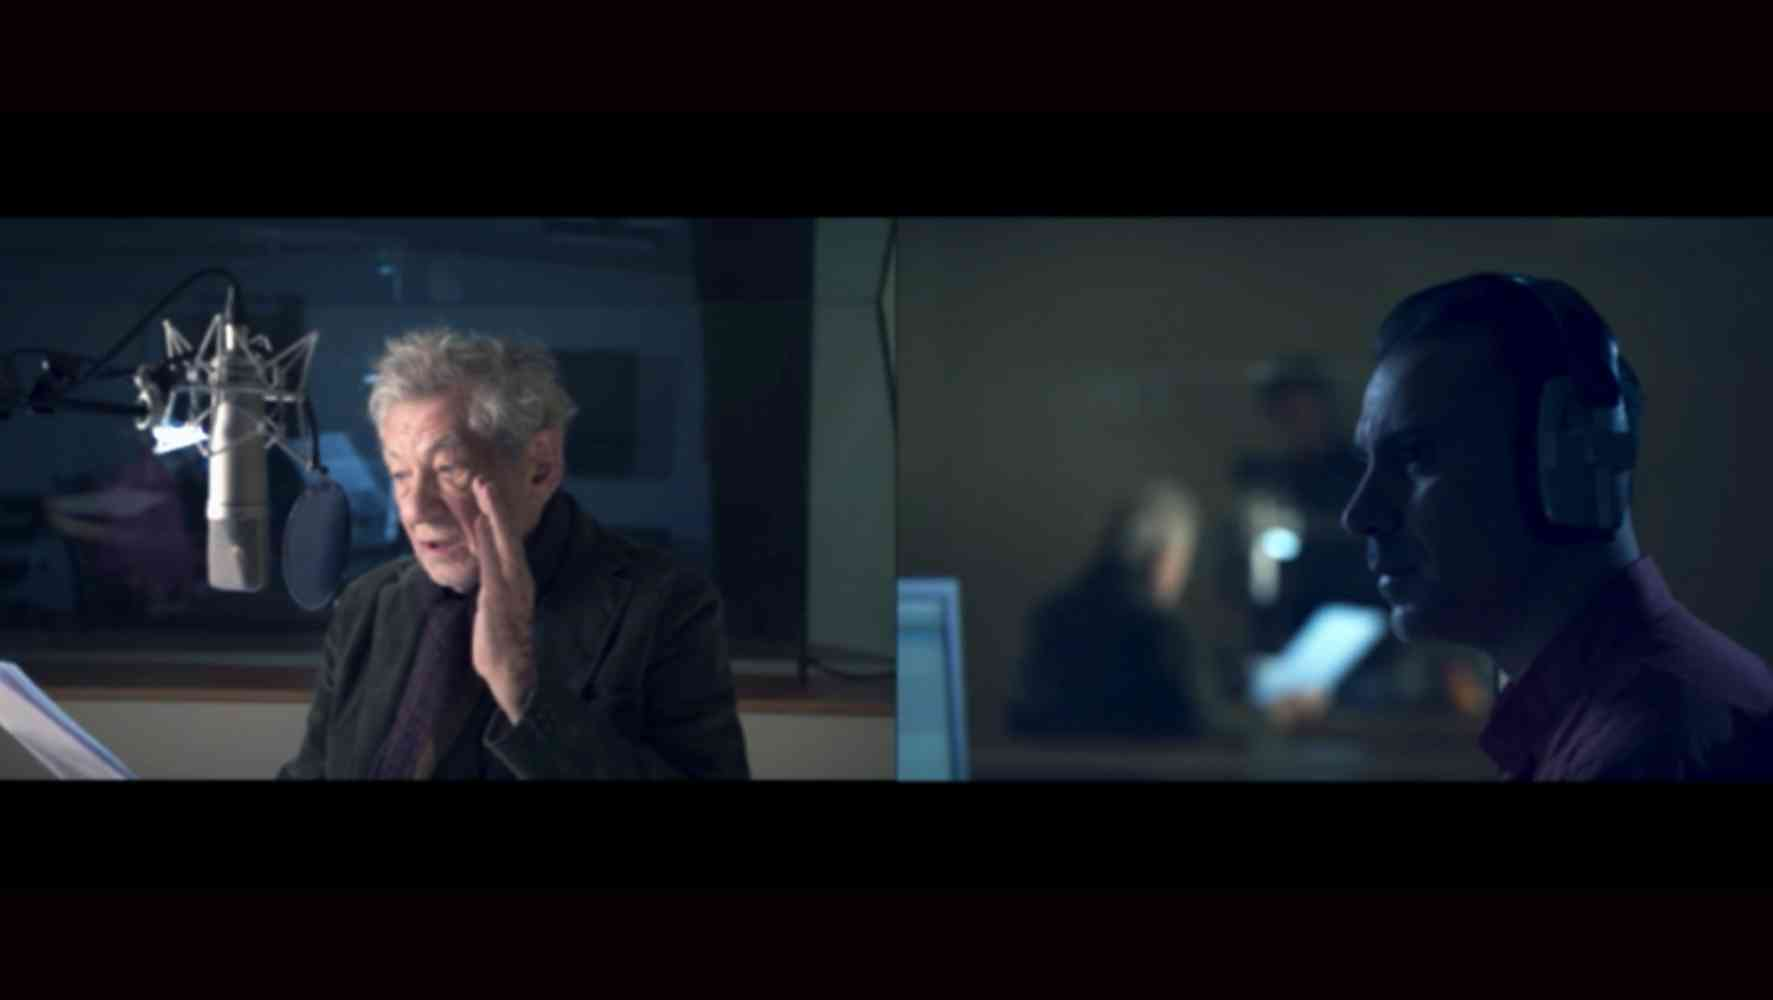 'The Father as 'Spectre':  Two Hamlets meet: Feature Film in Production - Ian McKellen plays the 'Ghost': Ben Turner plays Hamlet: Set in a recording studio this double screen sequence was shot using two parallel cameras and incorporated the 'resistances' generated by the sound equipment. Specific to digital developments in film. In a way that Shakespeare or the theatre could not envisage or produce.